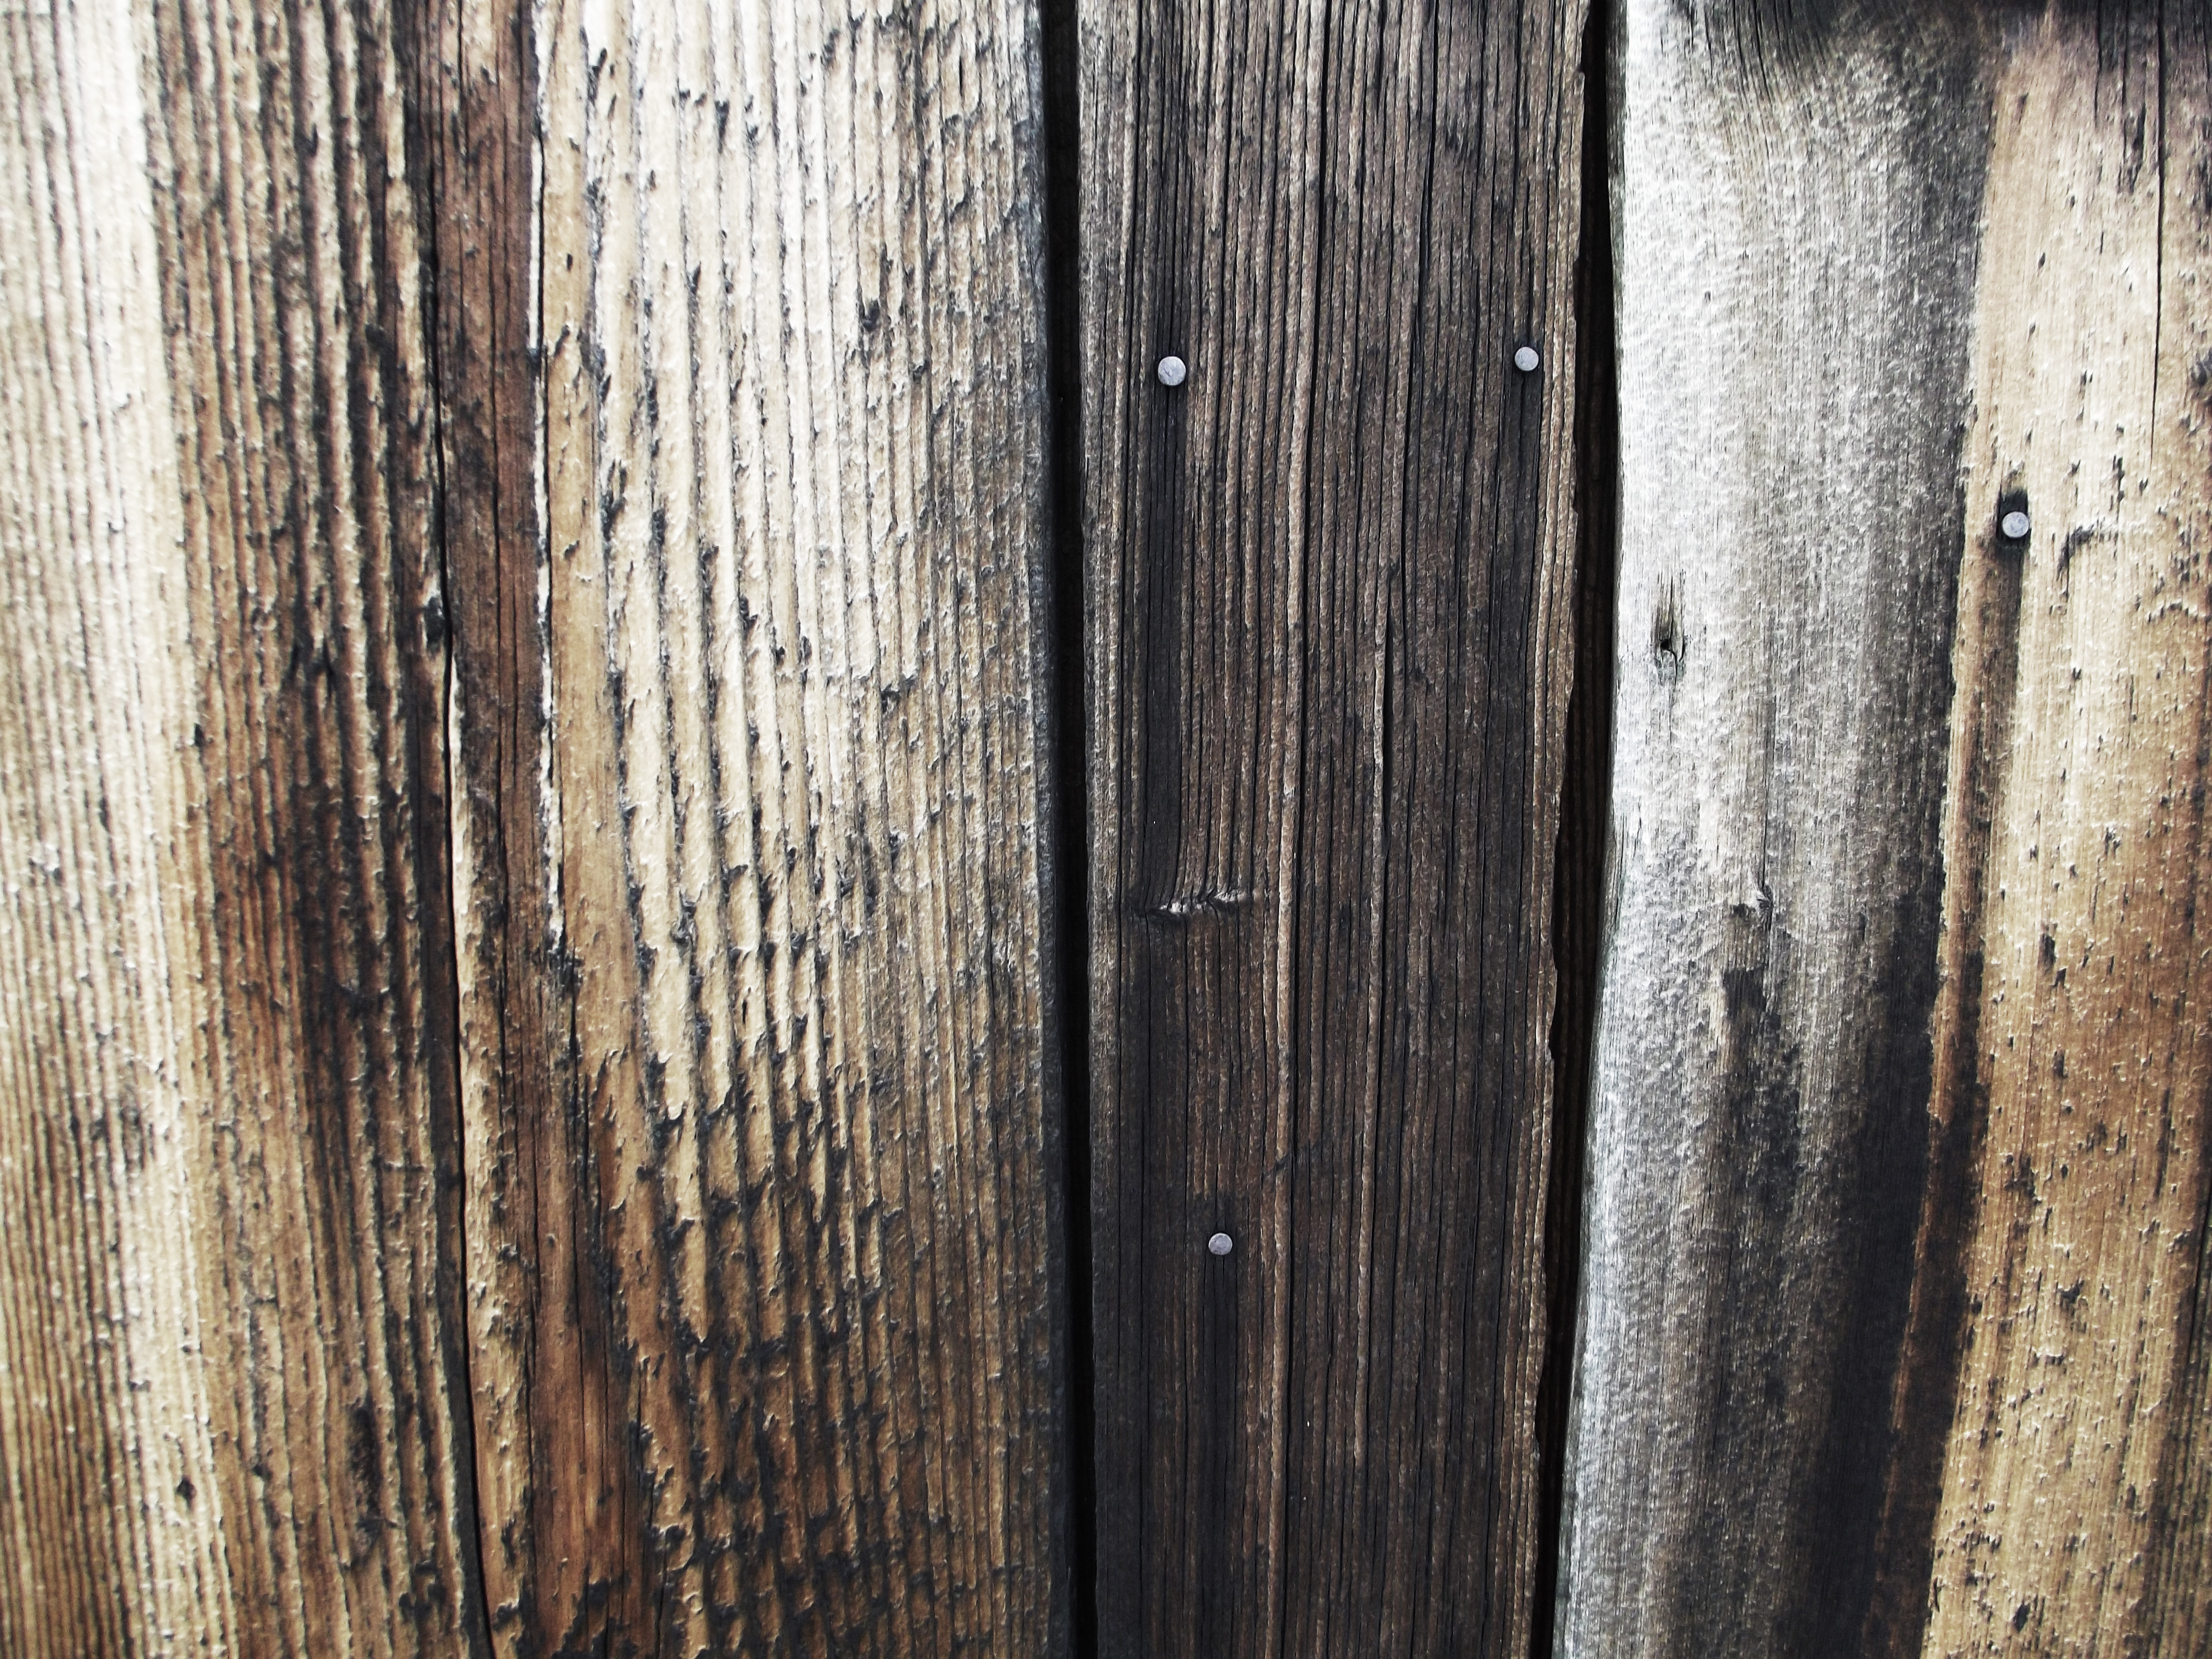 Barn Wood 3 by PTdesigns on deviantART